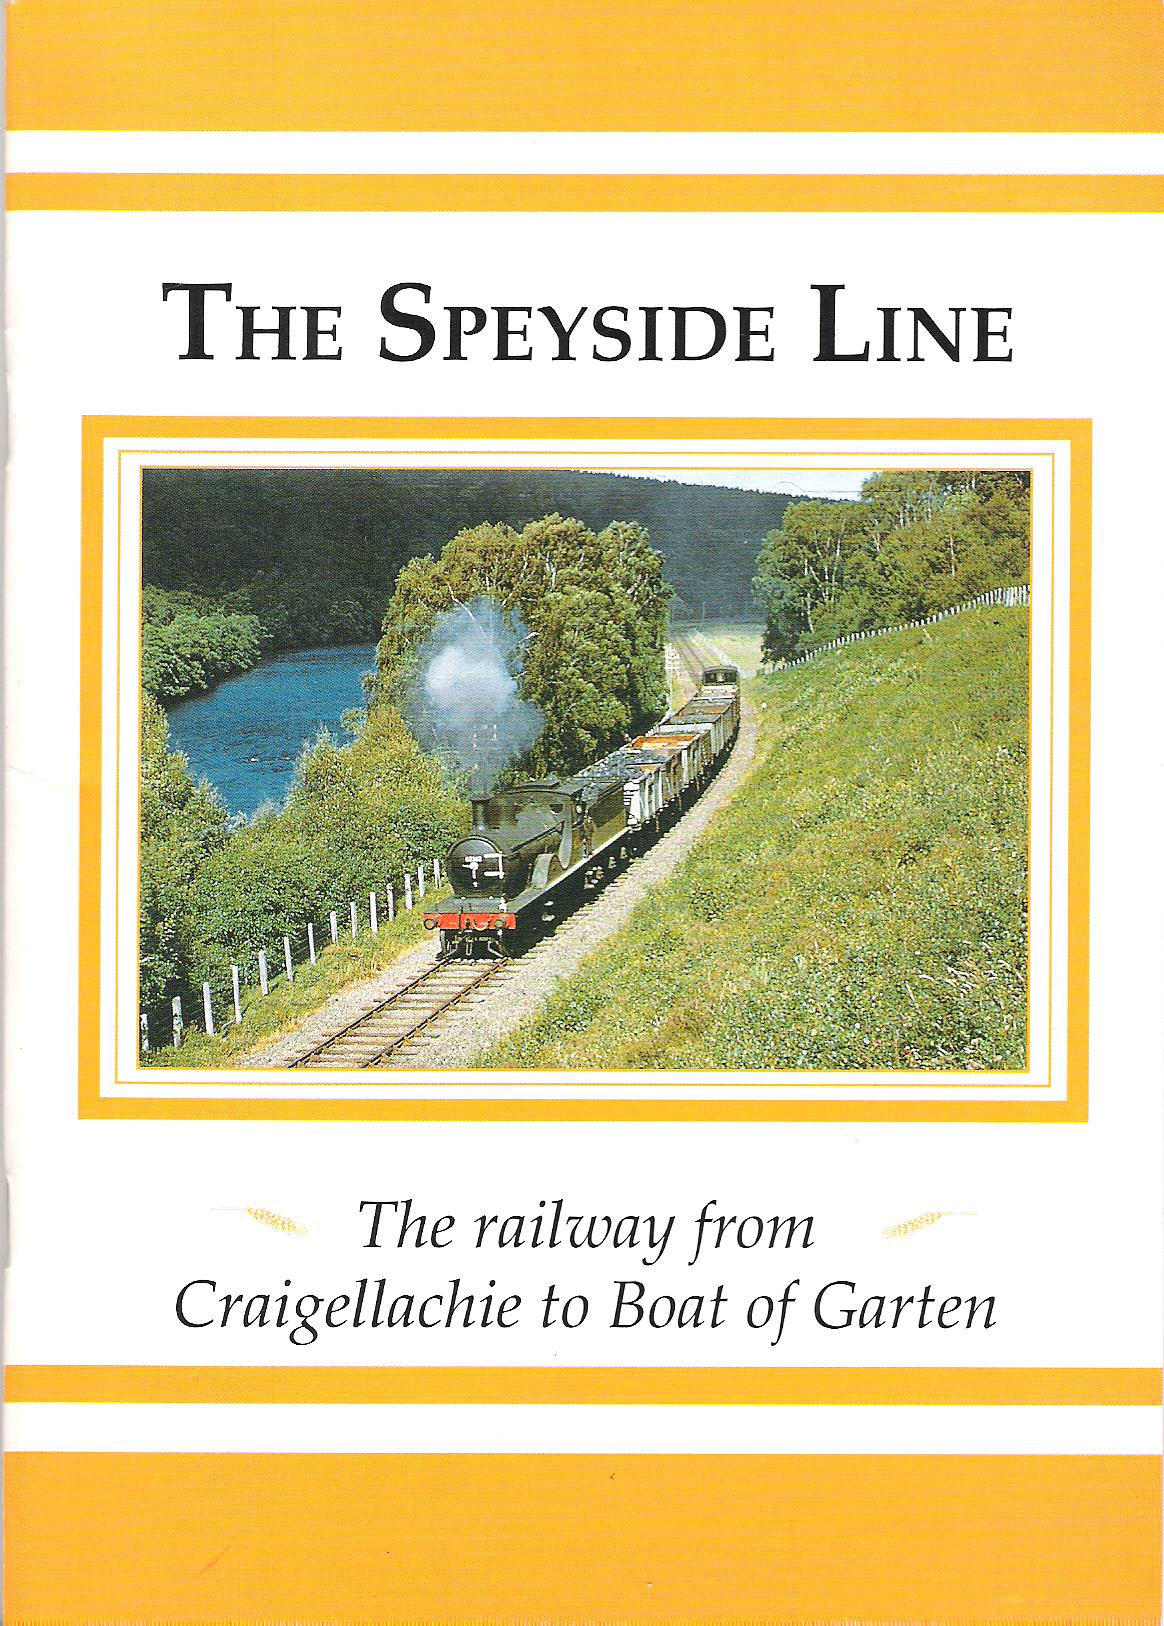 Image for The Speyside Line: The Railway from Craigellachie to Boat of Garten.